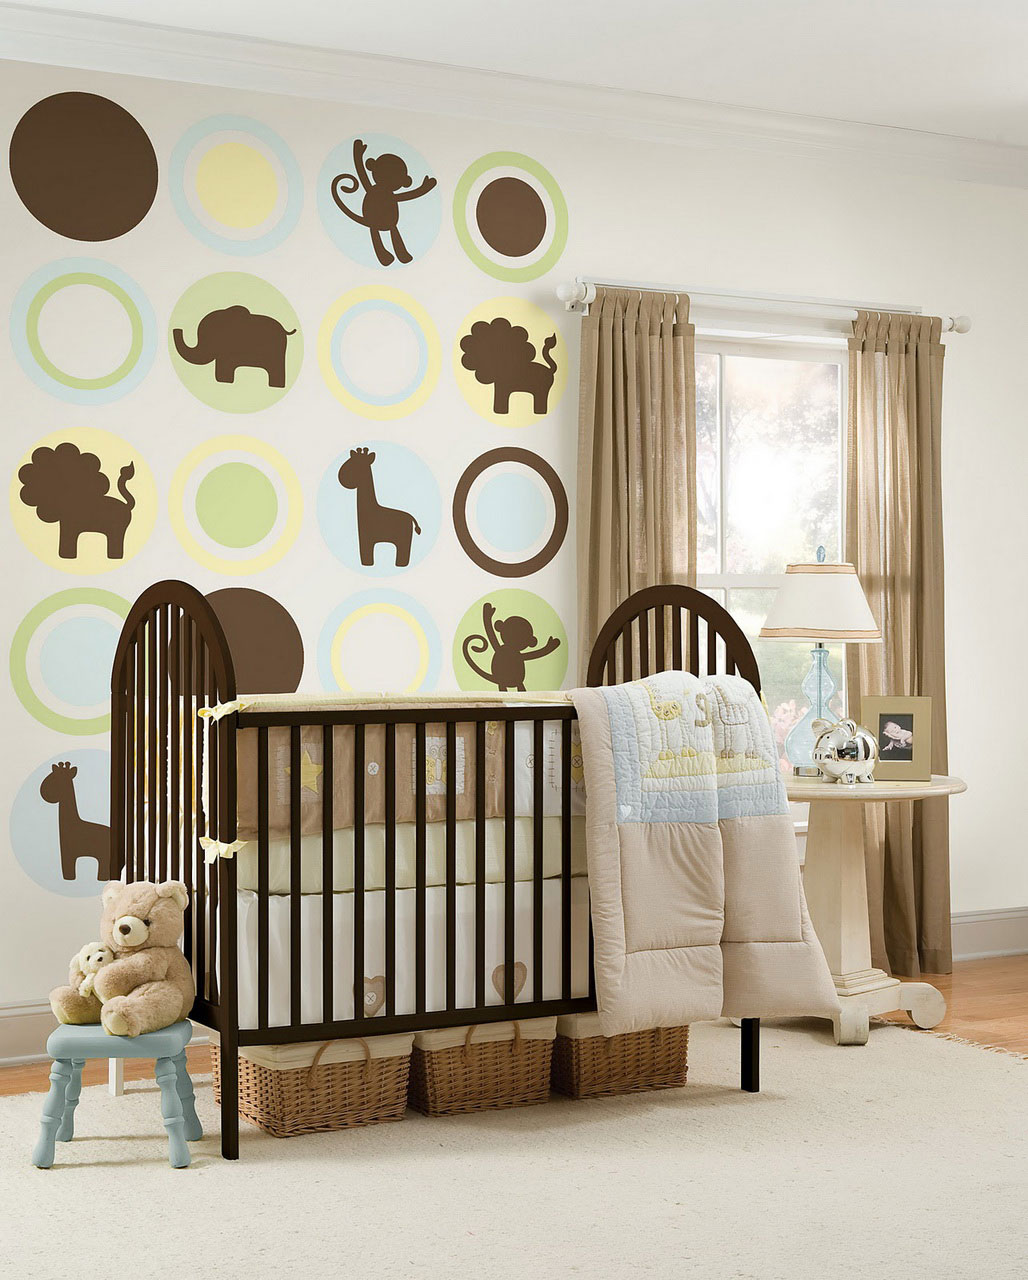 Dream nursery for your baby my decorative for Baby bedroom design